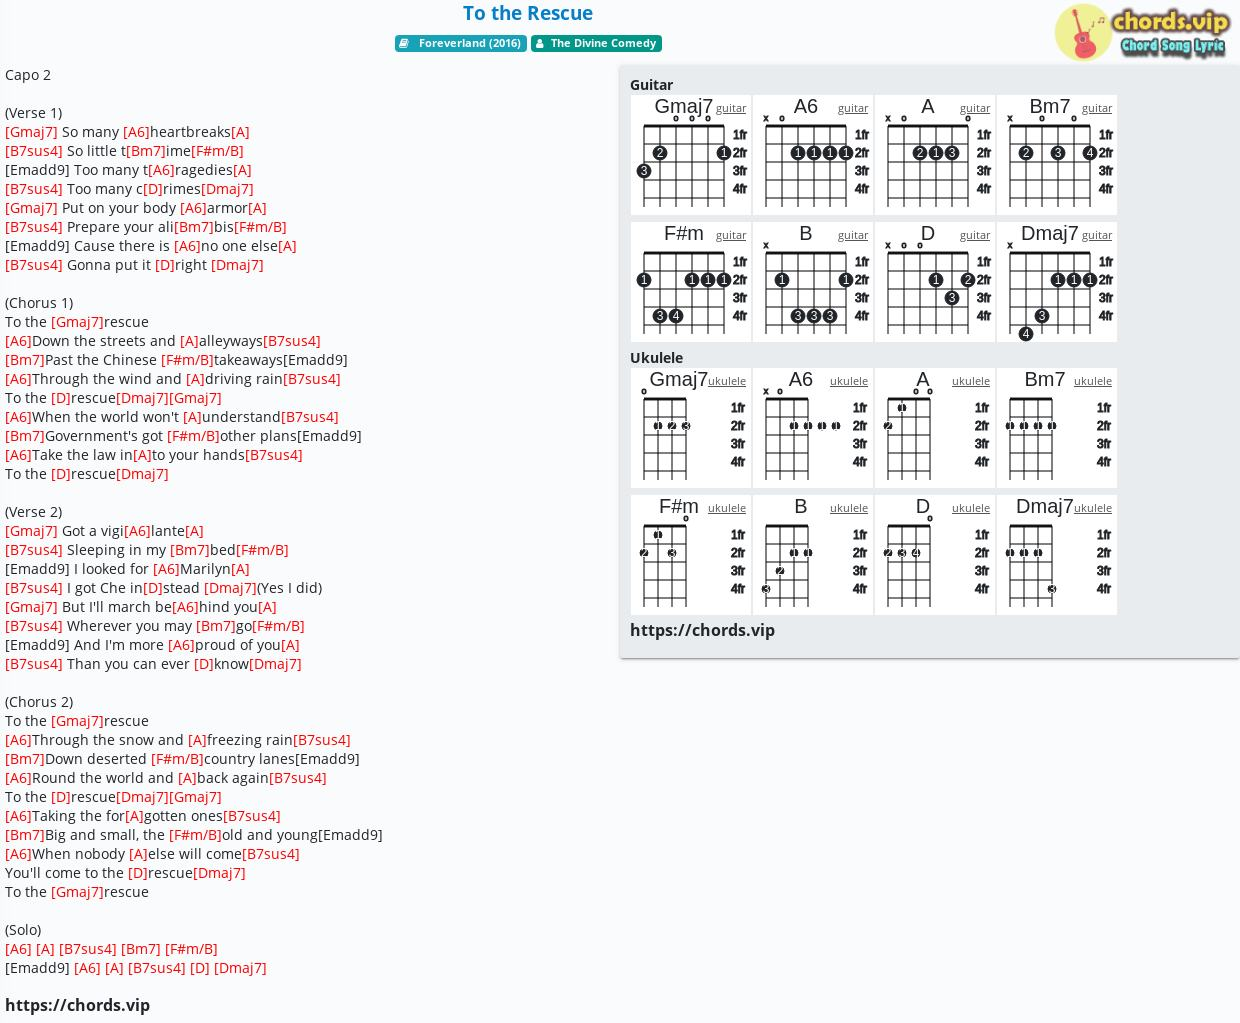 Chord To the Rescue   The Divine Comedy   tab, song lyric, sheet ...